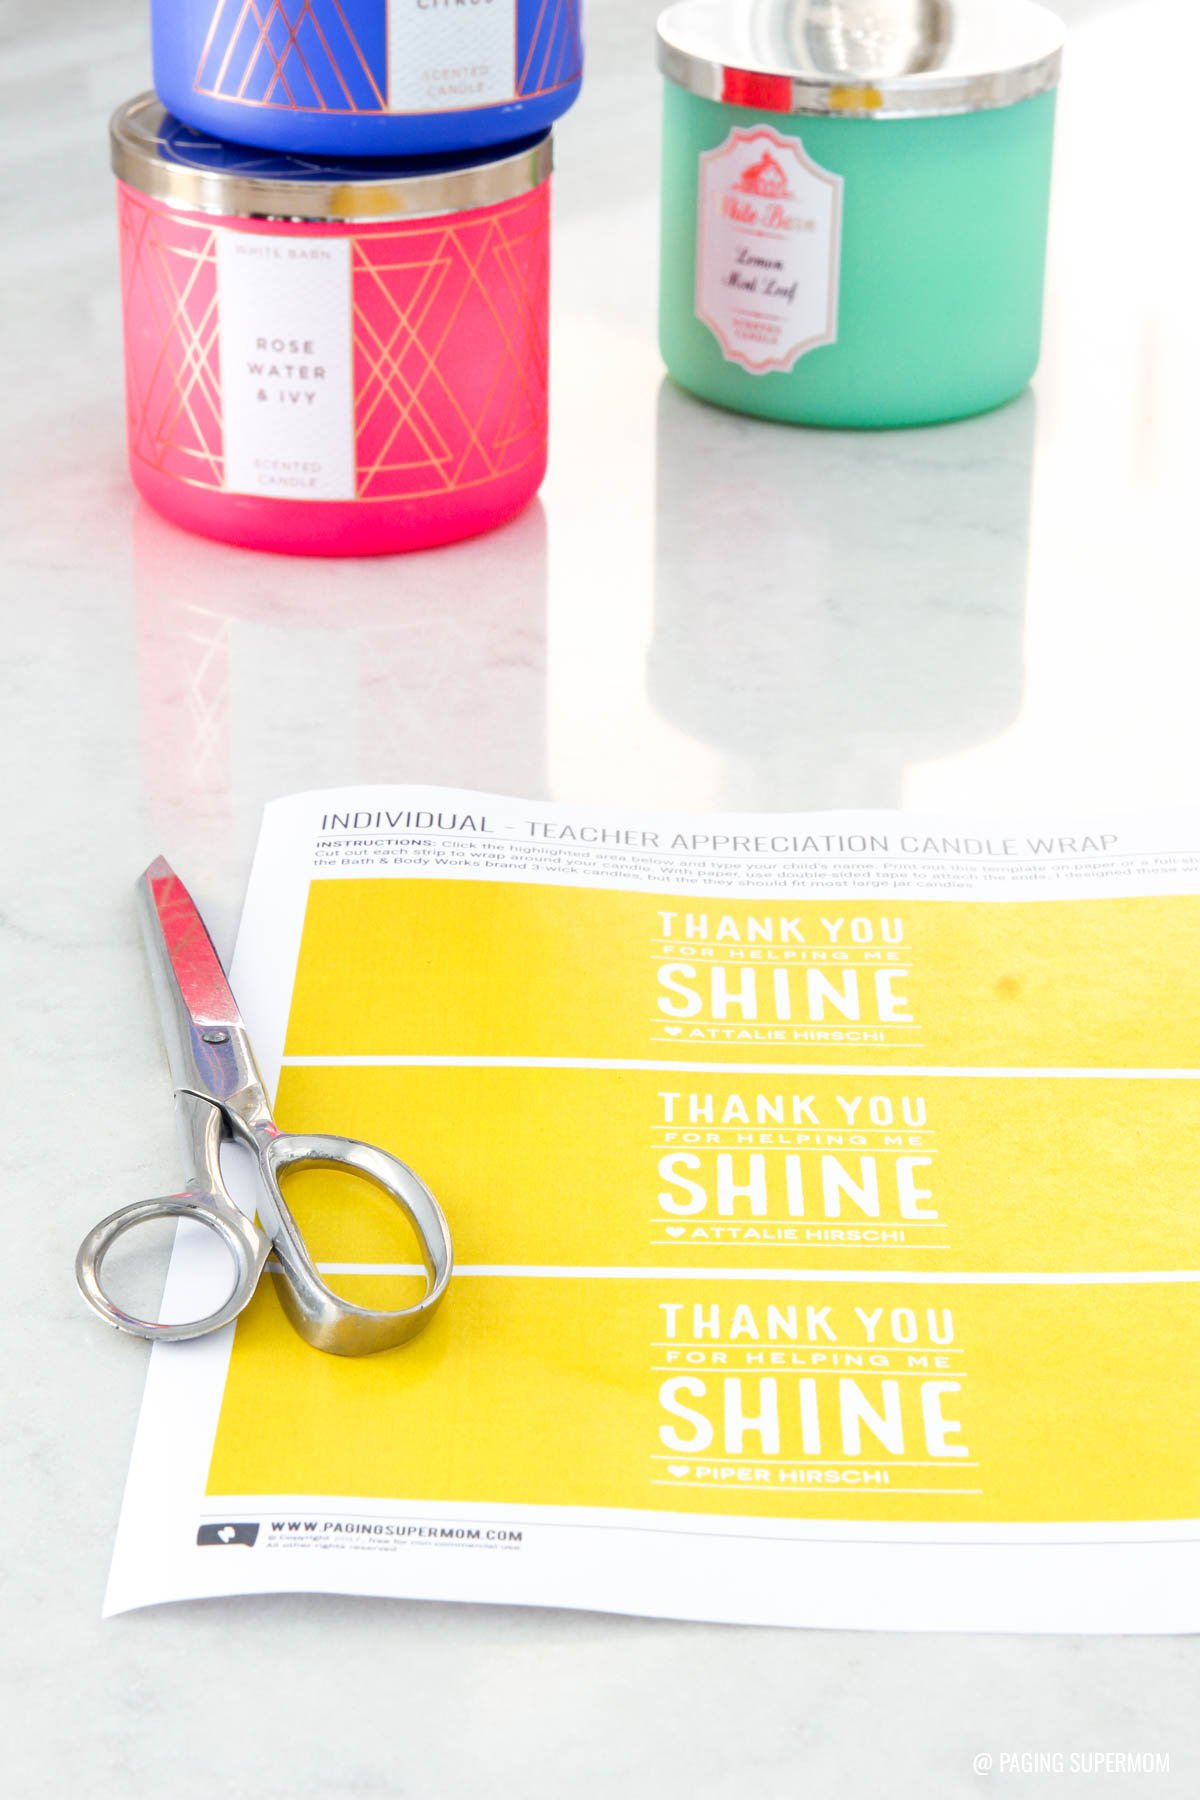 Free Printable Candle Wrap for Teacher Appreciation from @PagingSupermom via @TauniandCo